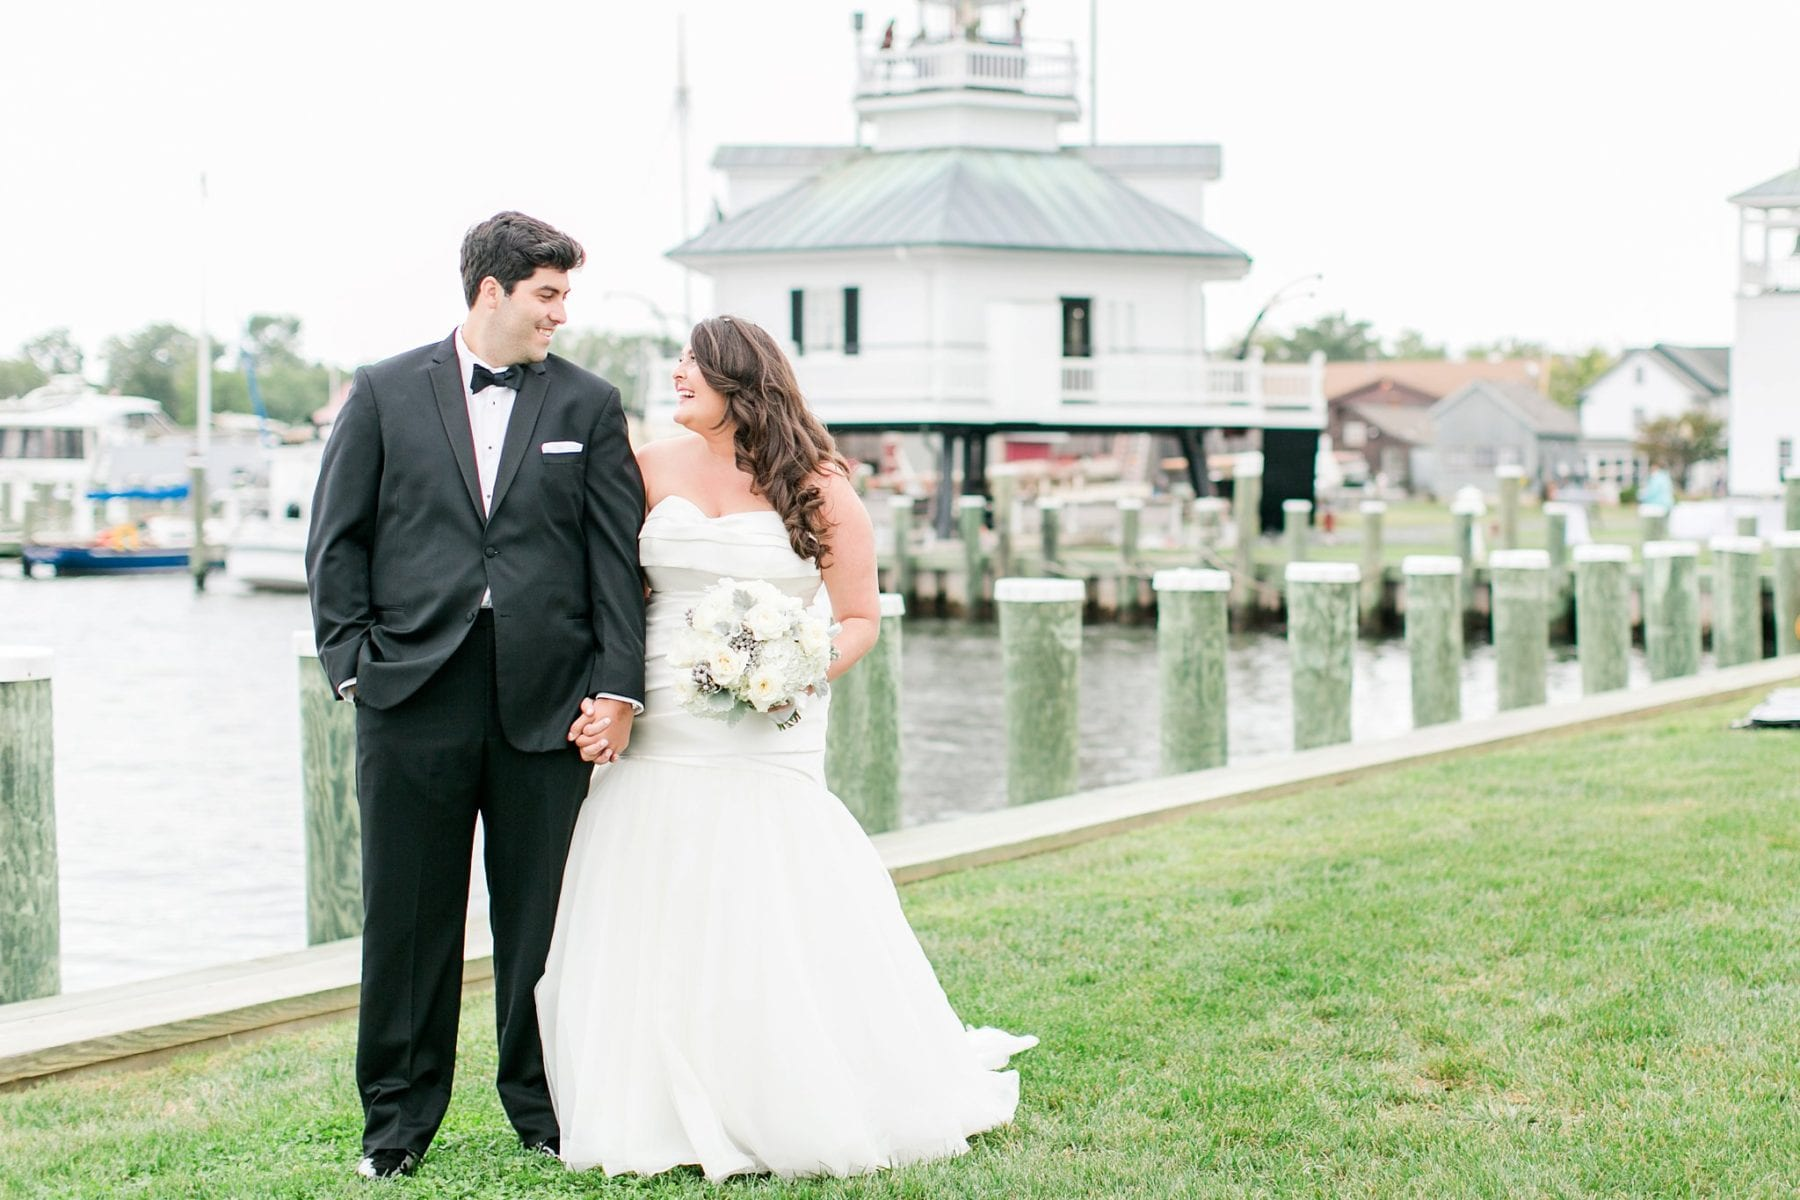 Chesapeake Bay Maritime Museum Wedding Photos Maryland Wedding Photographer Megan Kelsey Photography Halie & Mike-67.jpg